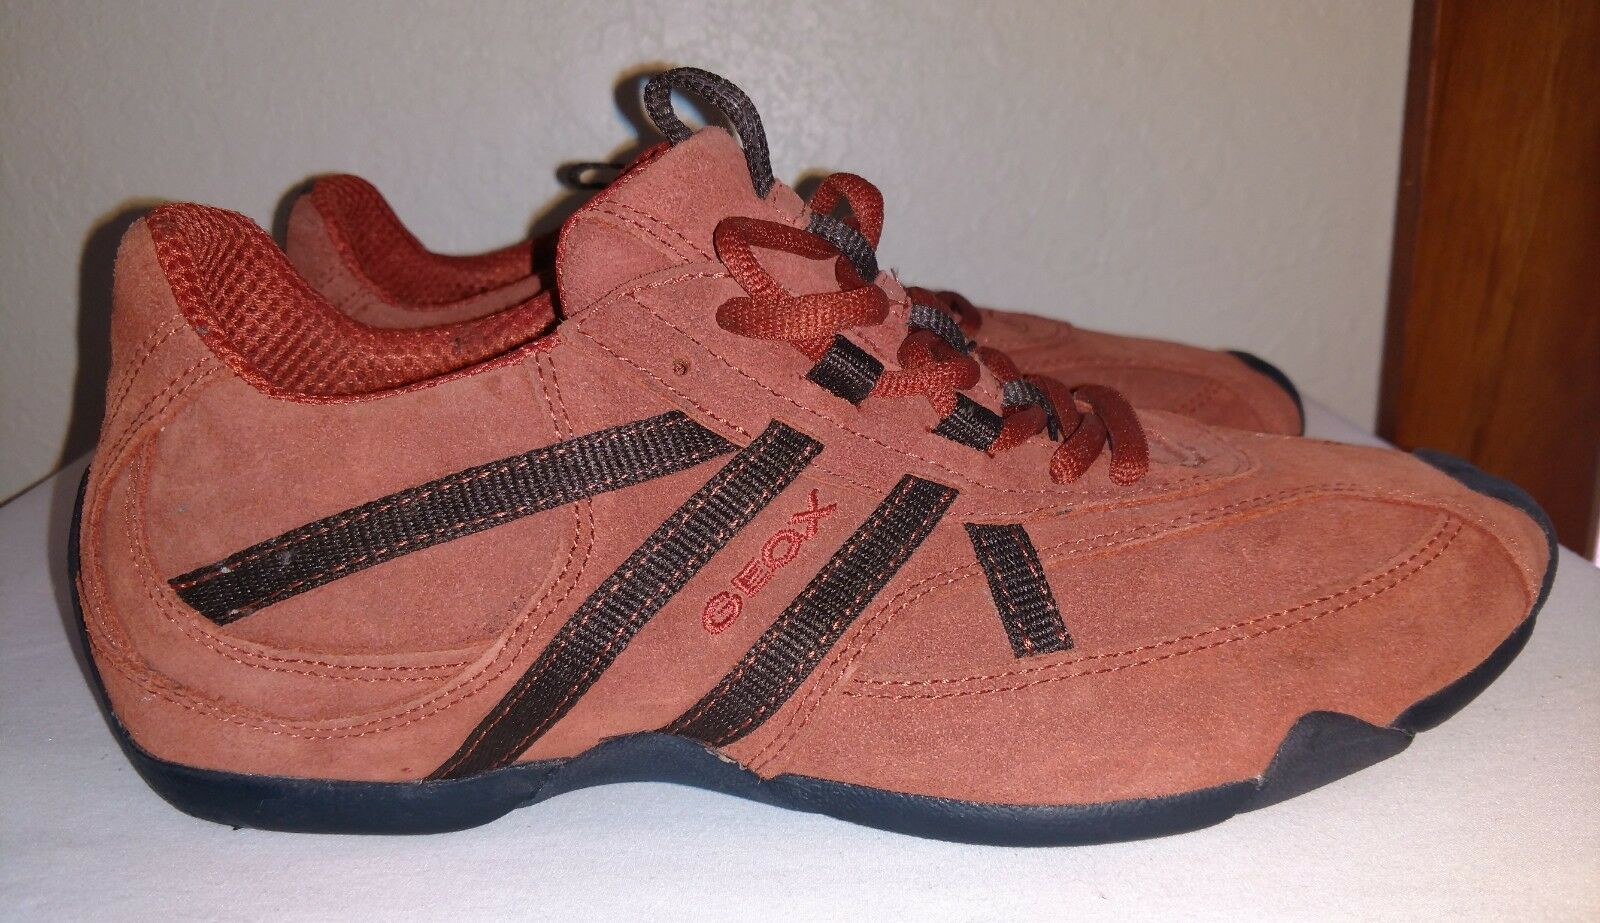 NEW GEOX RESPIRA Mens Sneakers orange Brown Suede Leather shoes Sz 10 10.5